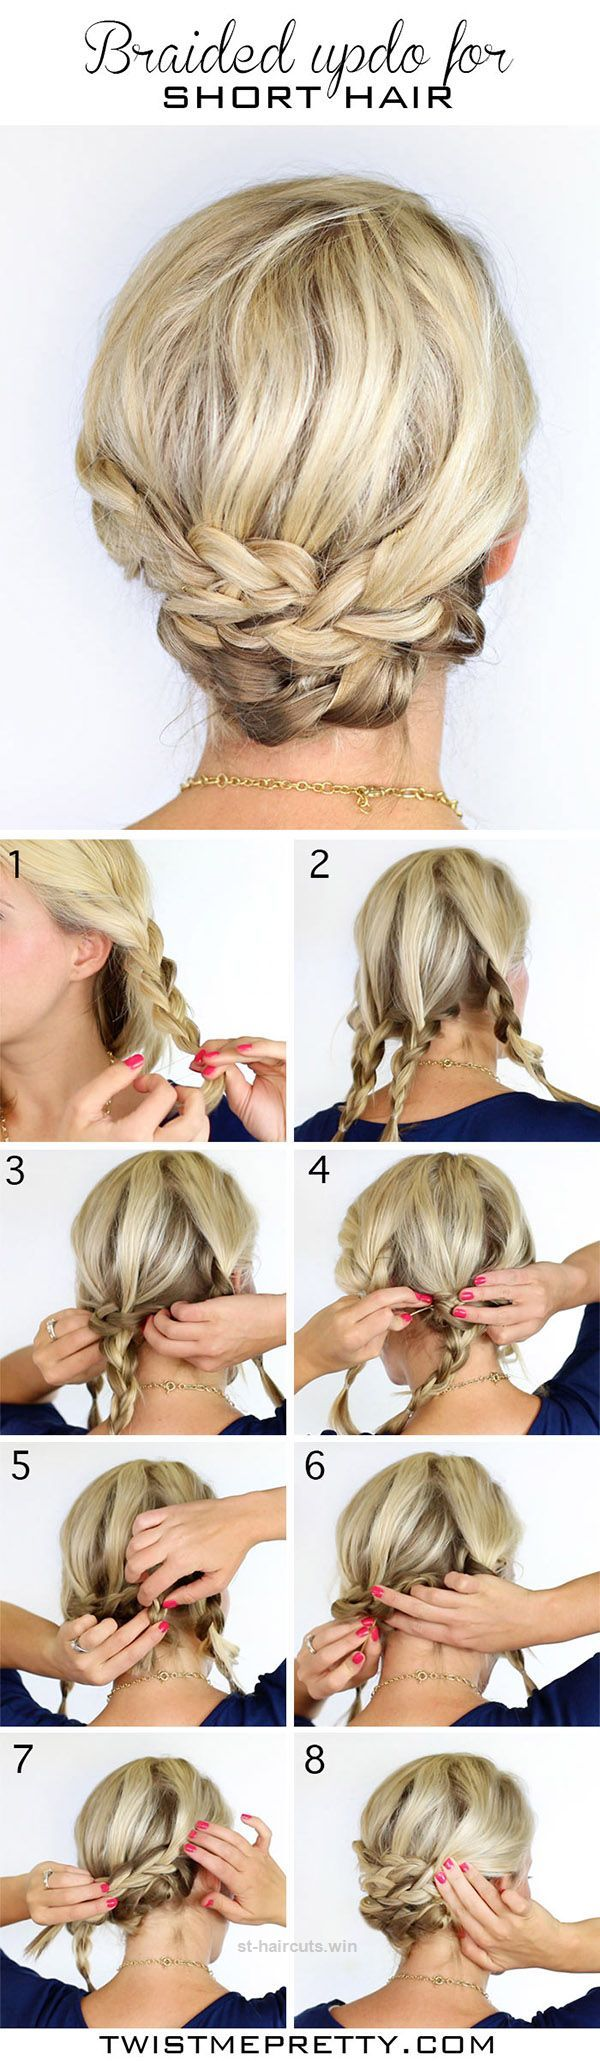 Incredible diy braided updo wedding hairstyles for short hairs  The post  diy braided updo wedding hairstyles for short hairs…  appeared first on  ST Haircuts .